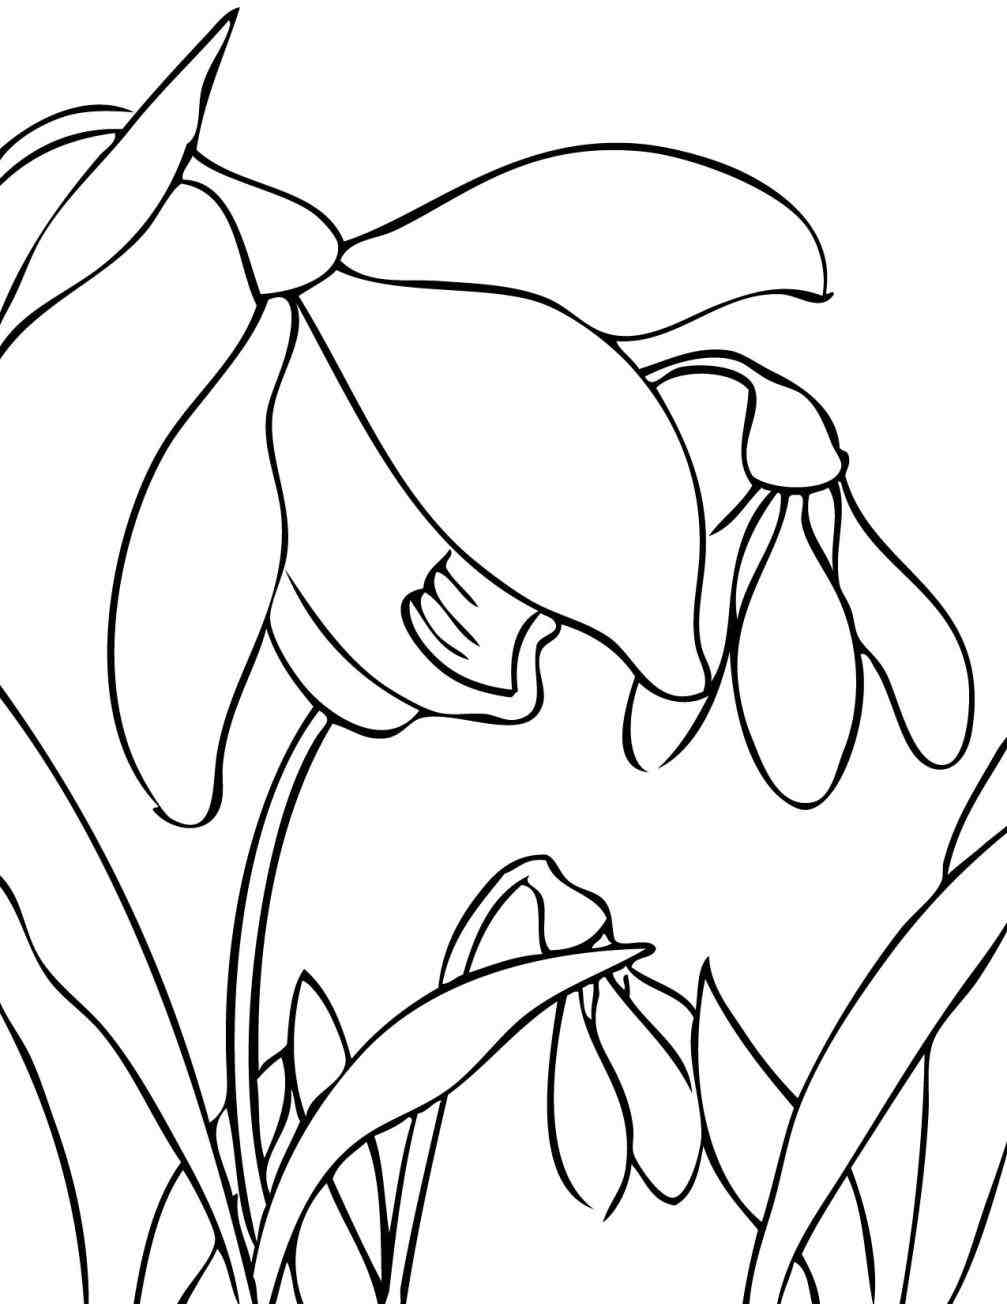 1007x1304 The Images Collection Of Ing For Kids On Season Nice Coloring Page